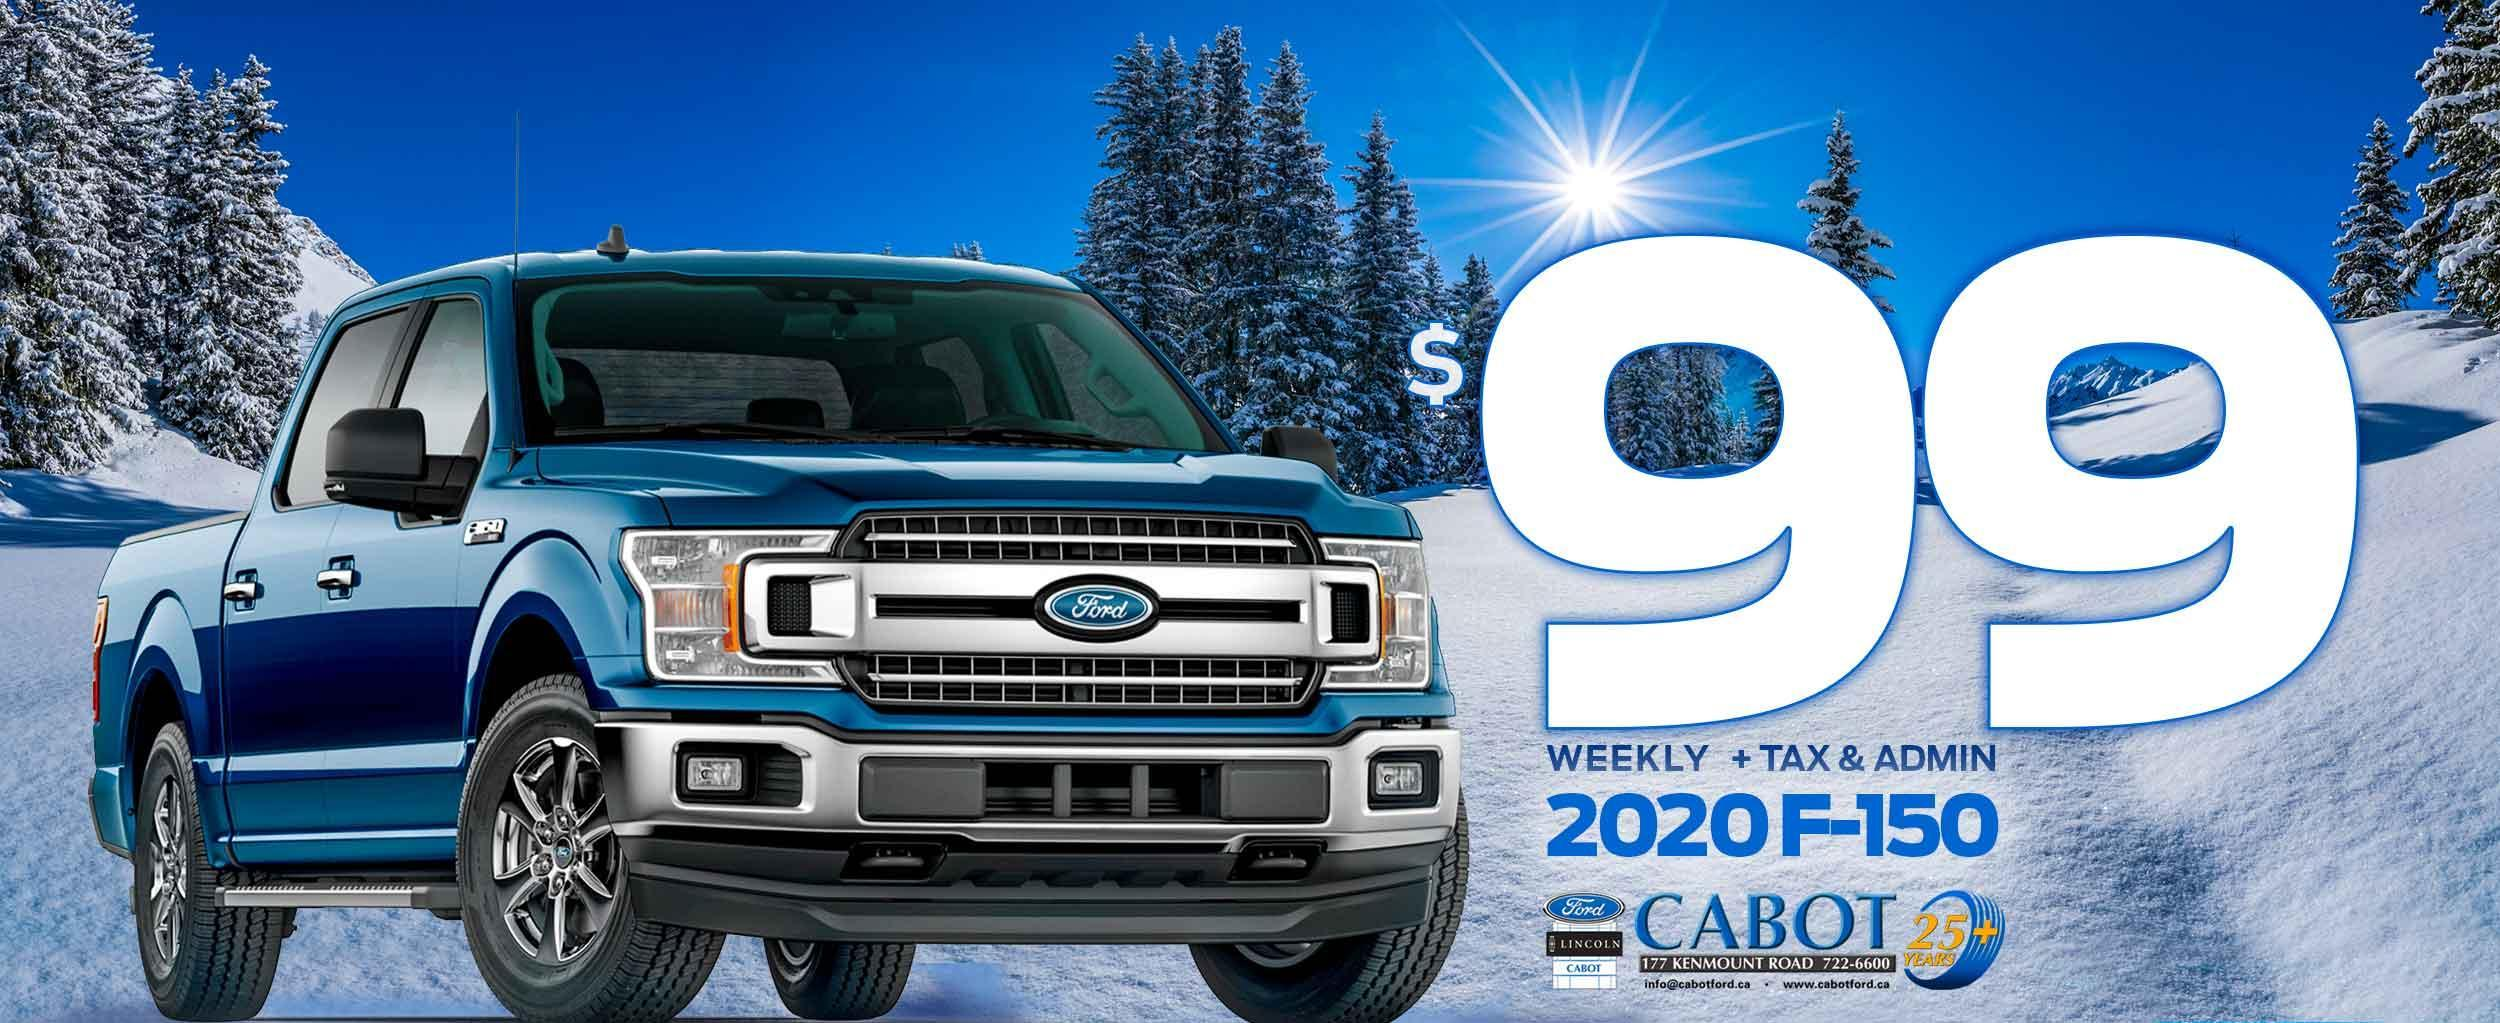 Now get select F-150 XLT 4x4 CREWCABs for just $99 weekly + tax and admin!